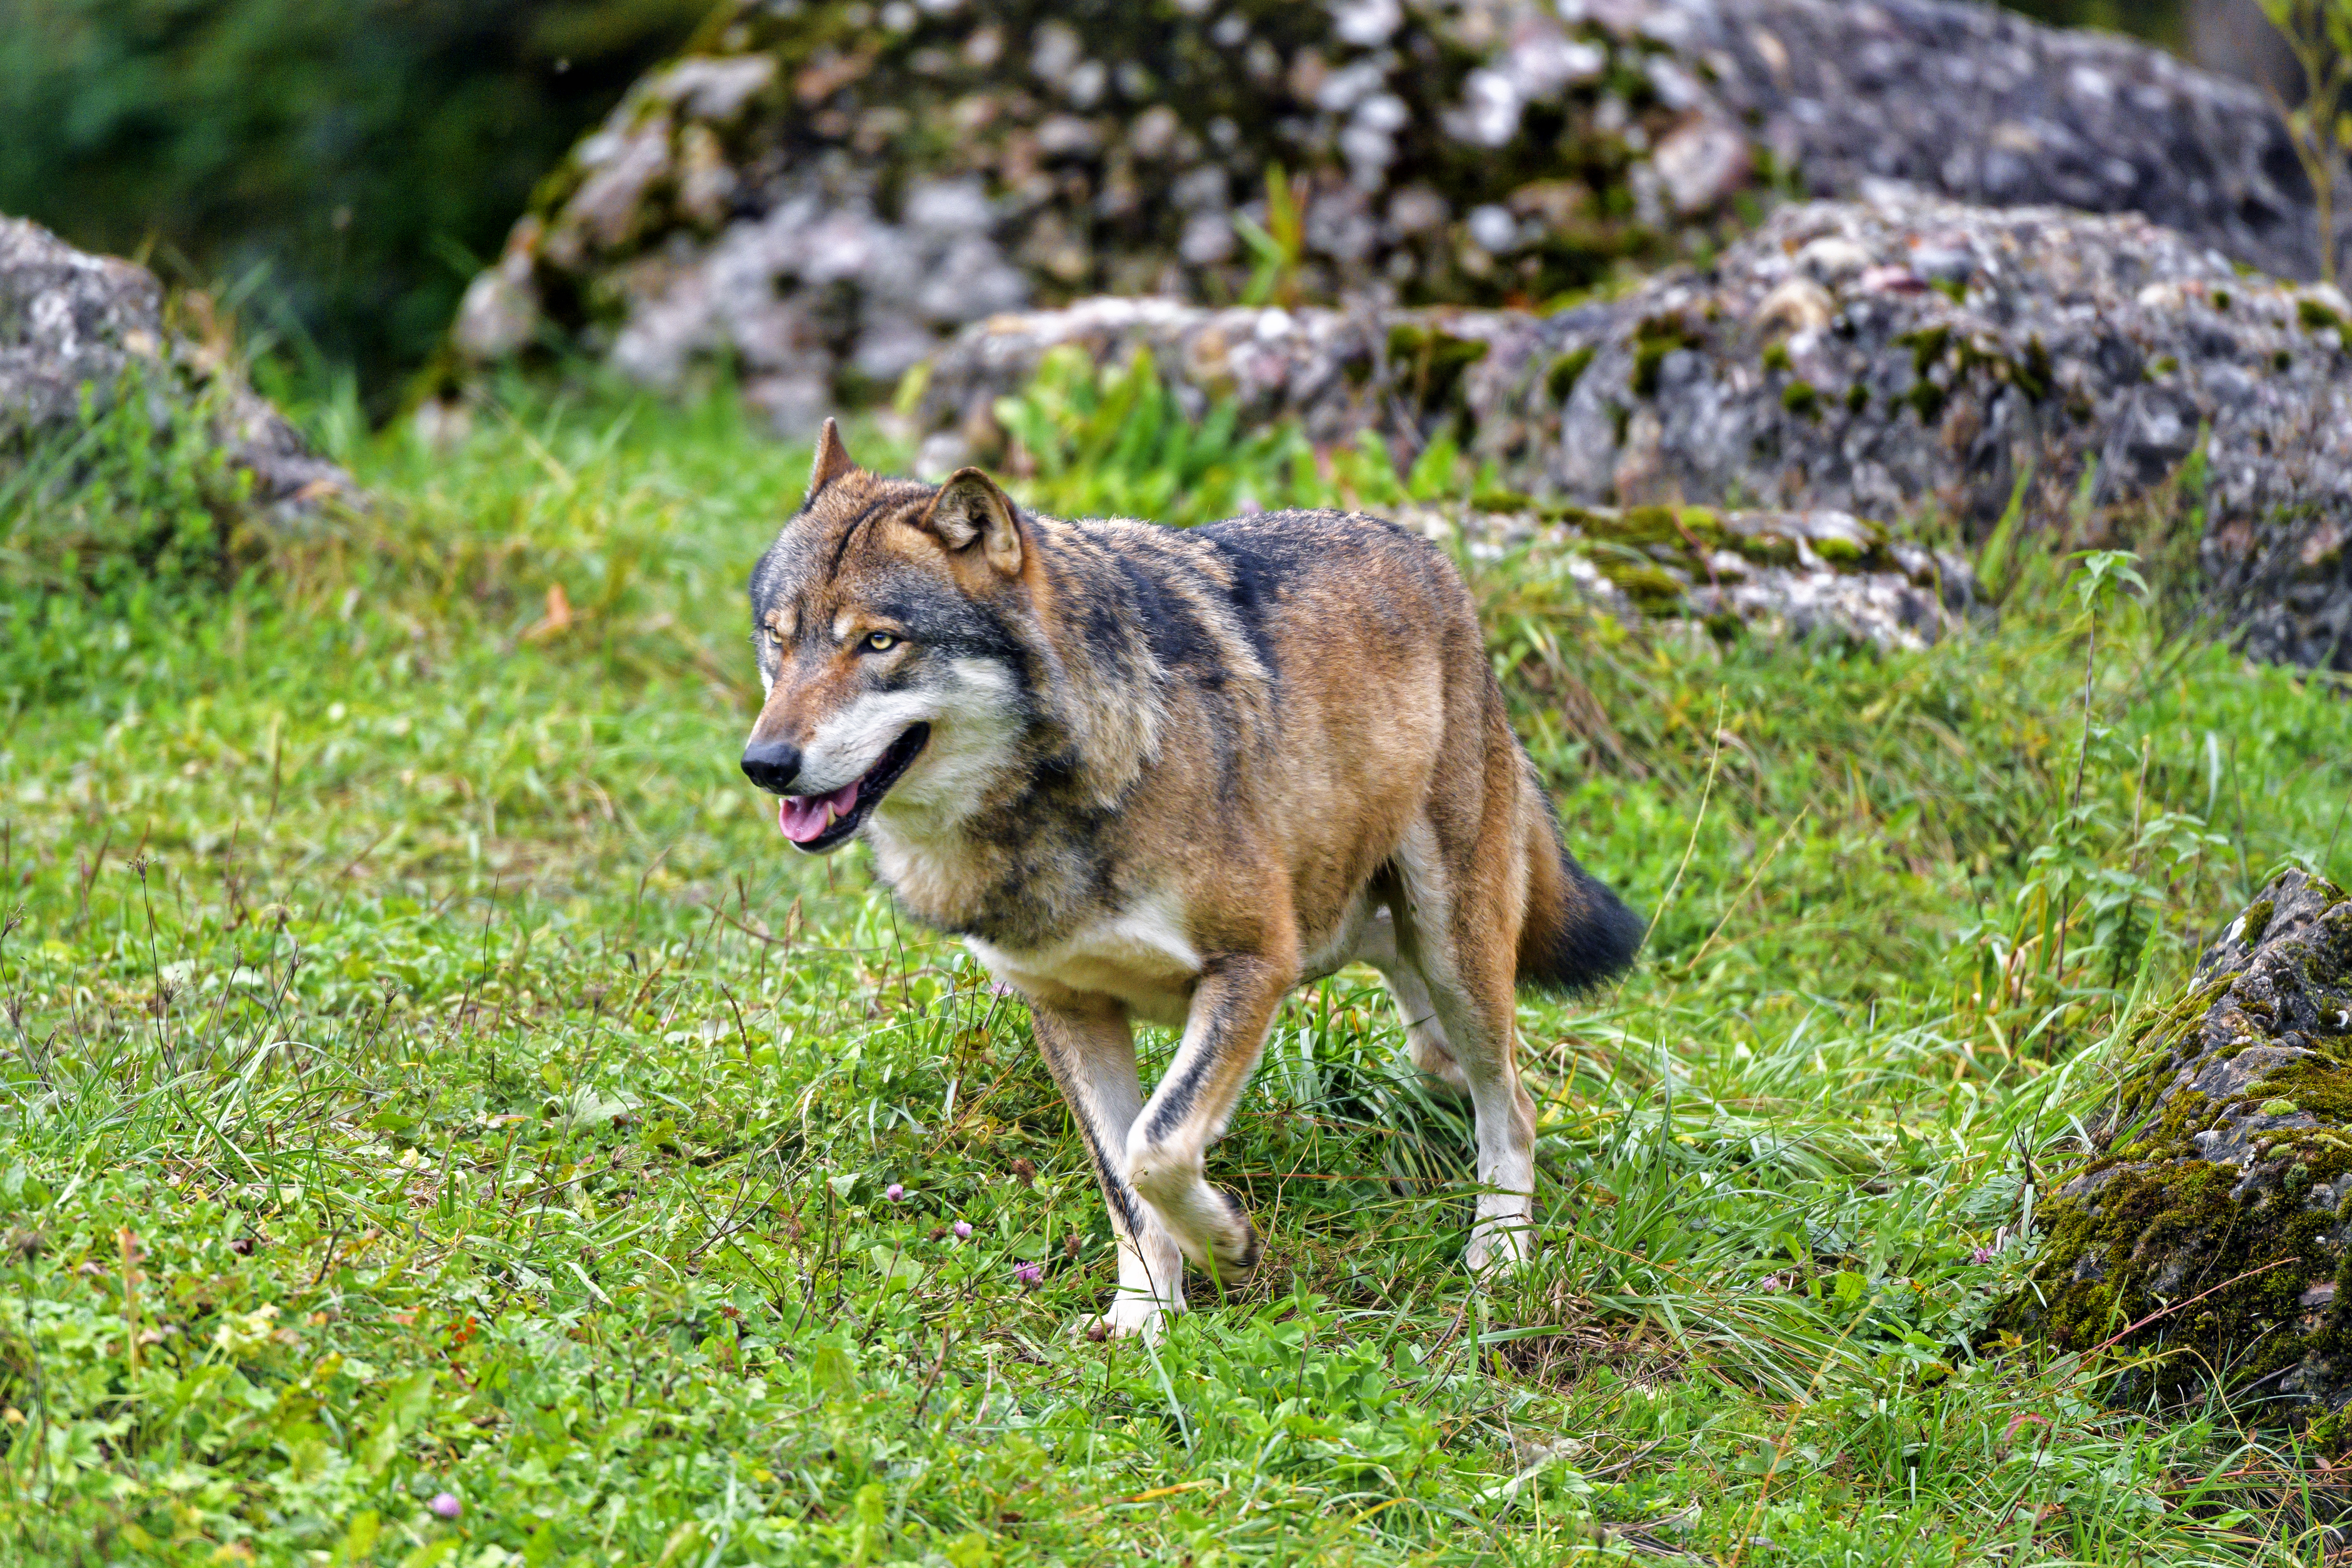 149993 download wallpaper Animals, Wolf, Predator, Animal, Wildlife screensavers and pictures for free